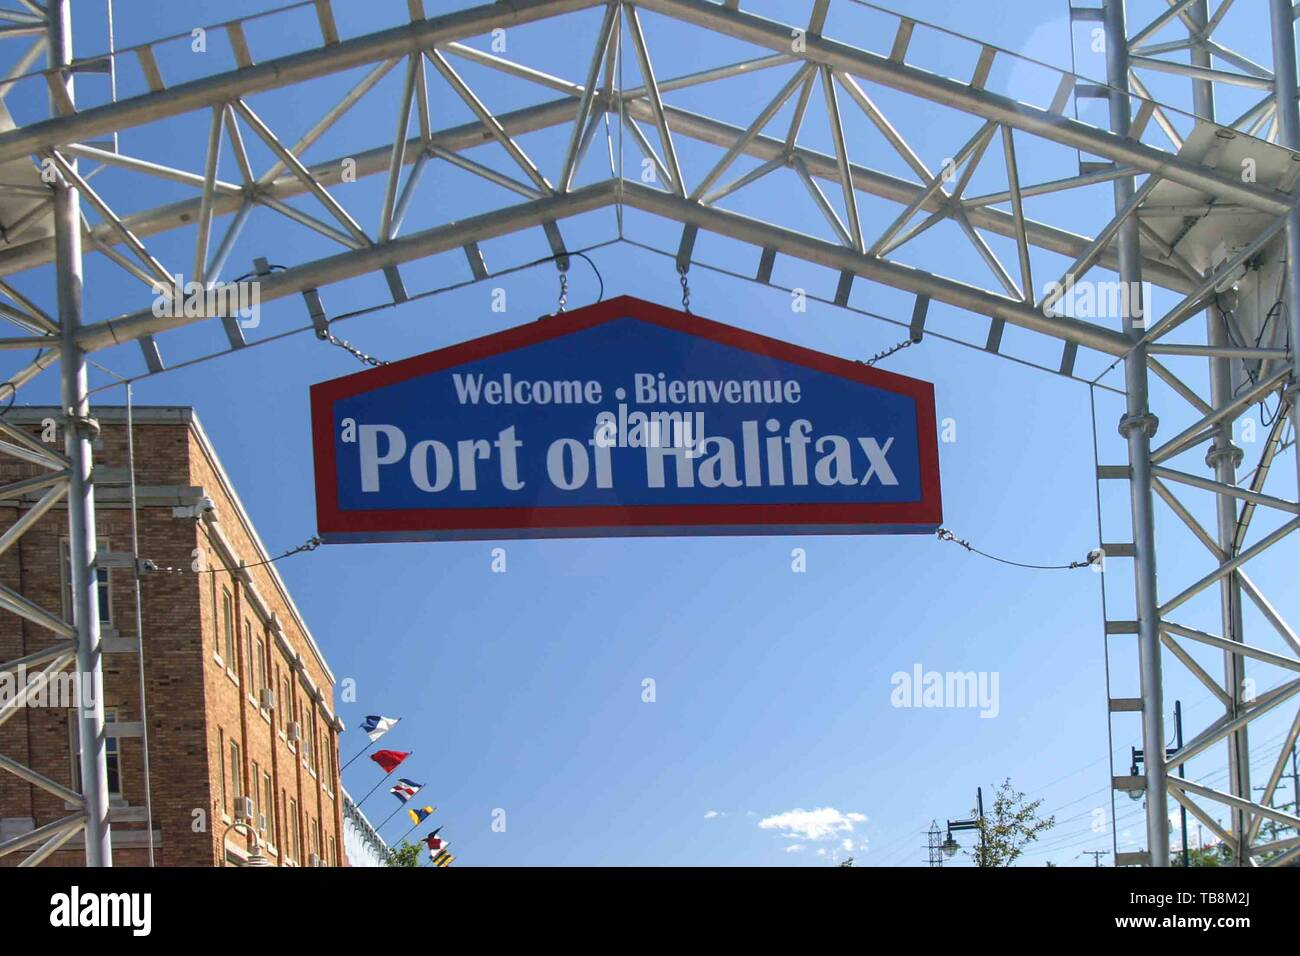 Halifax, Nova Scotia, Canada. 5th Sep, 2005. A welcome sign, in English and French, in the Port of Halifax, Nova Scotia, Canada. Credit: Arnold Drapkin/ZUMA Wire/Alamy Live News - Stock Image